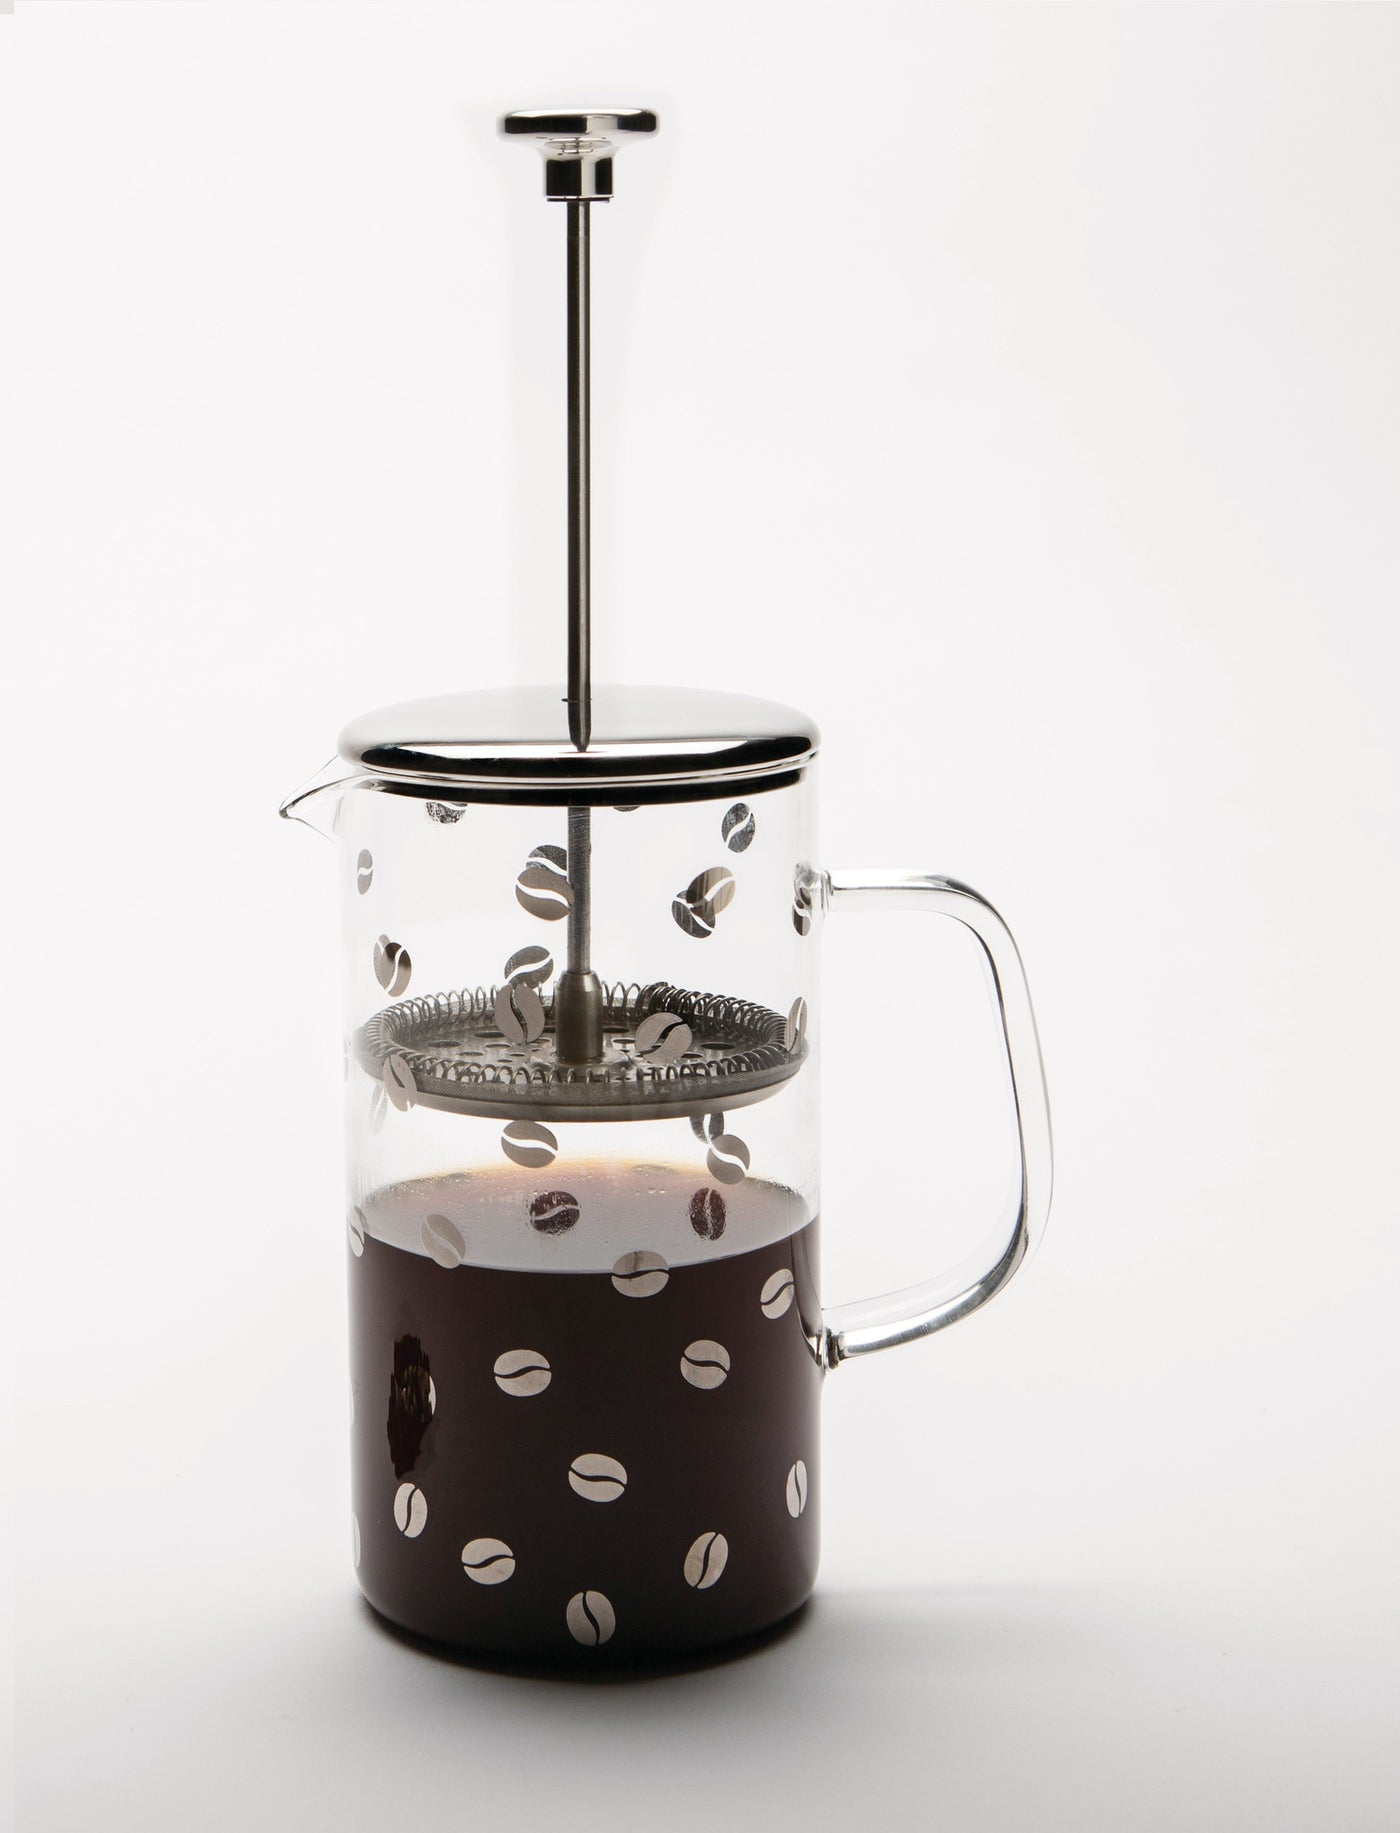 Discounting Invoices Word Alessi Mame Cafetiere  Brewing Equpment  Redbercouk  Redber  How To Pay Paypal Invoice Excel with Income Receipts Word  Morrison  Alessi Mame Cafetiere  Alessi Mame Read Receipt Outlook 2007 Word